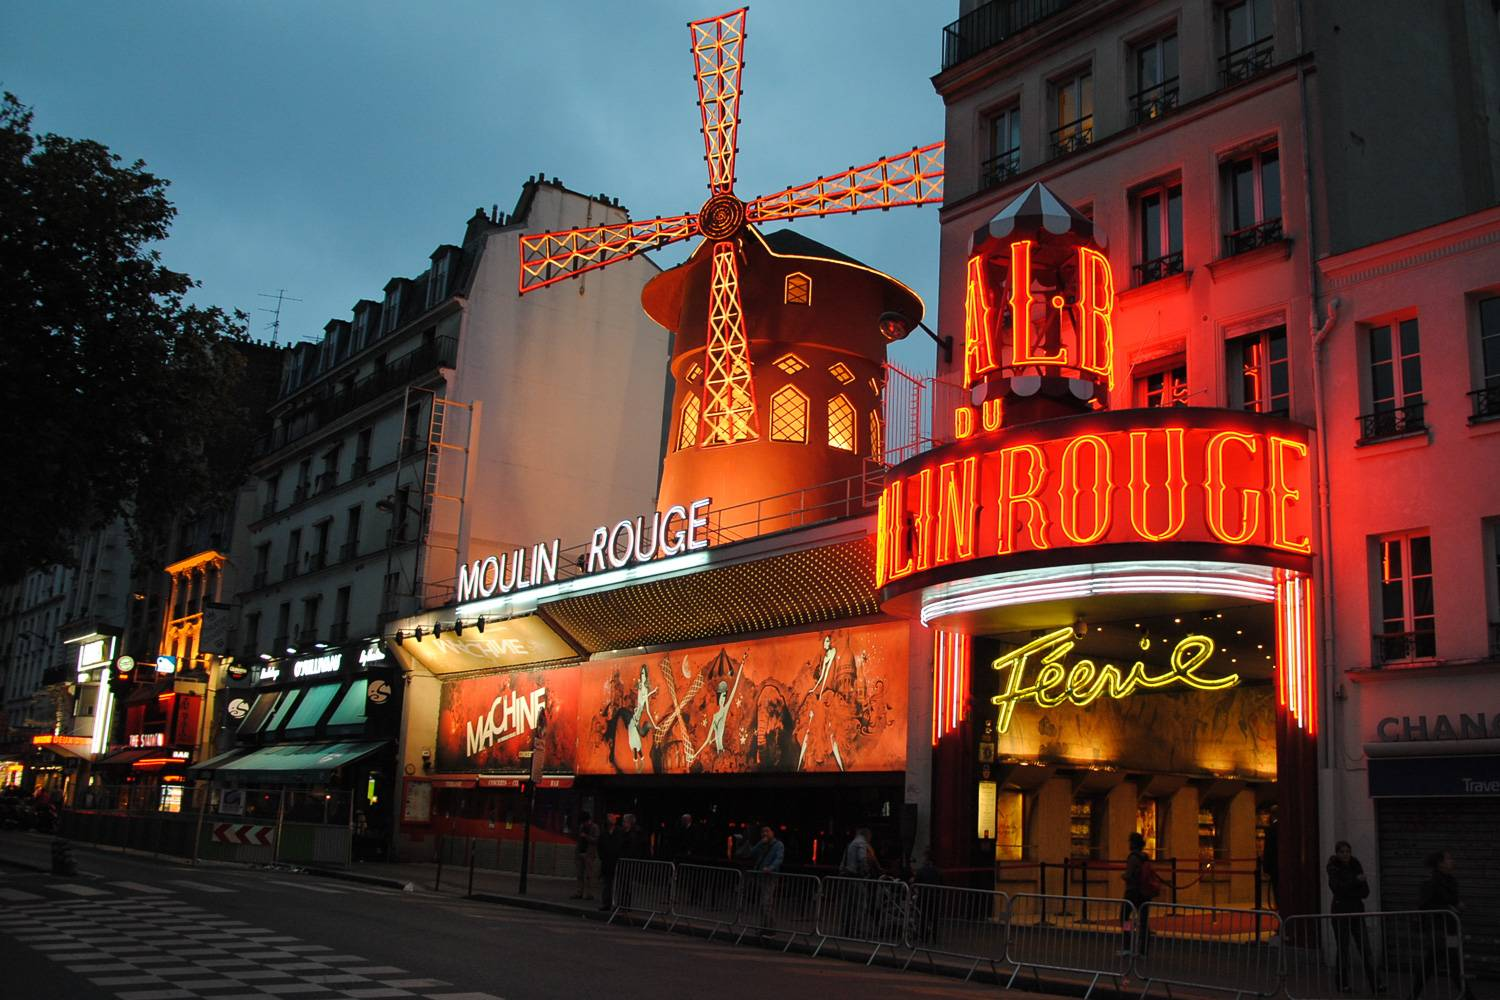 Image of the Cabaret Moulin Rouge in Paris lit up with neon signs at night.